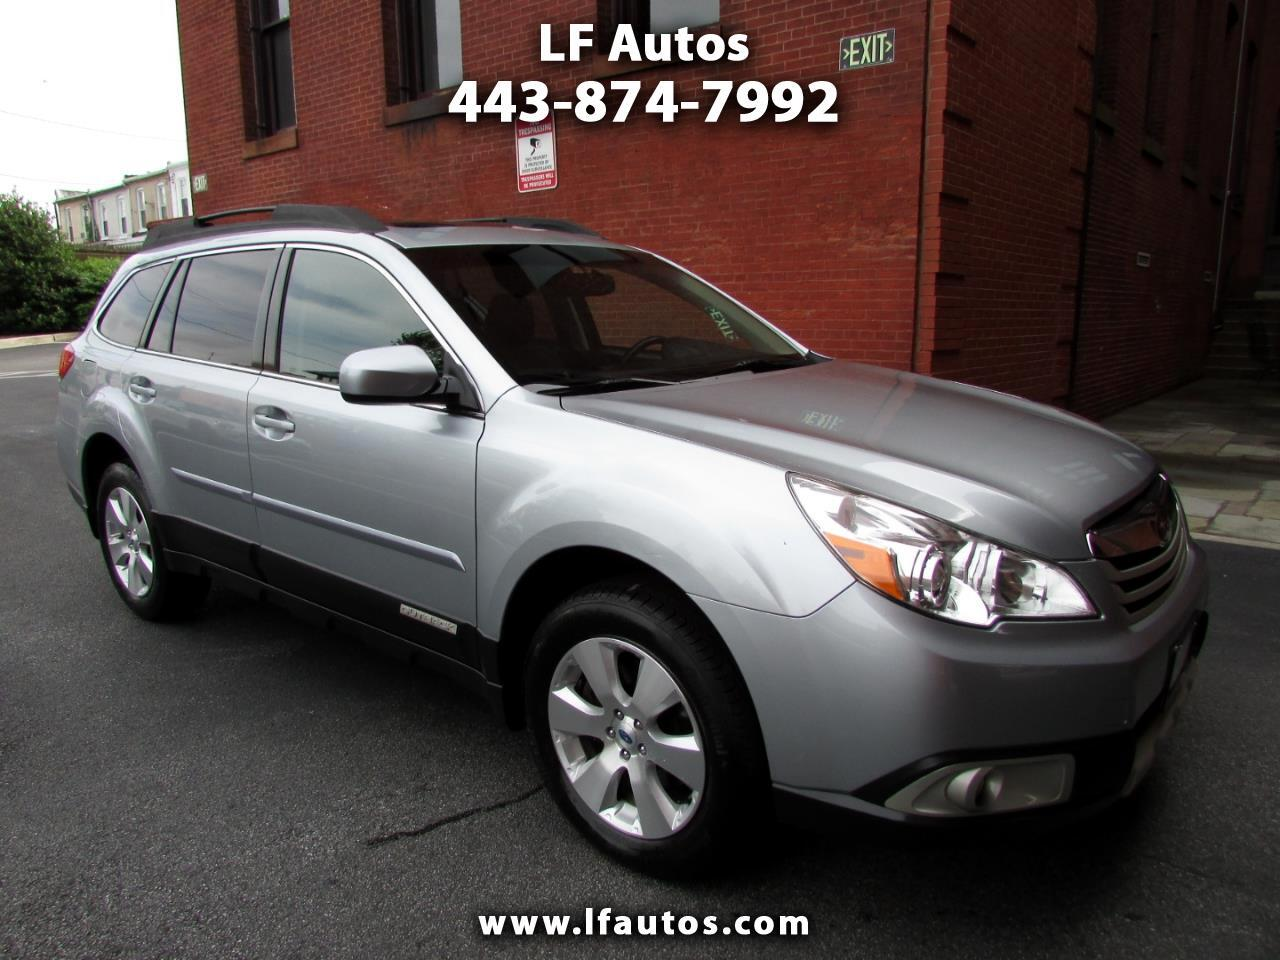 2012 Subaru Outback 4dr Wgn H6 Auto 3.6R Limited